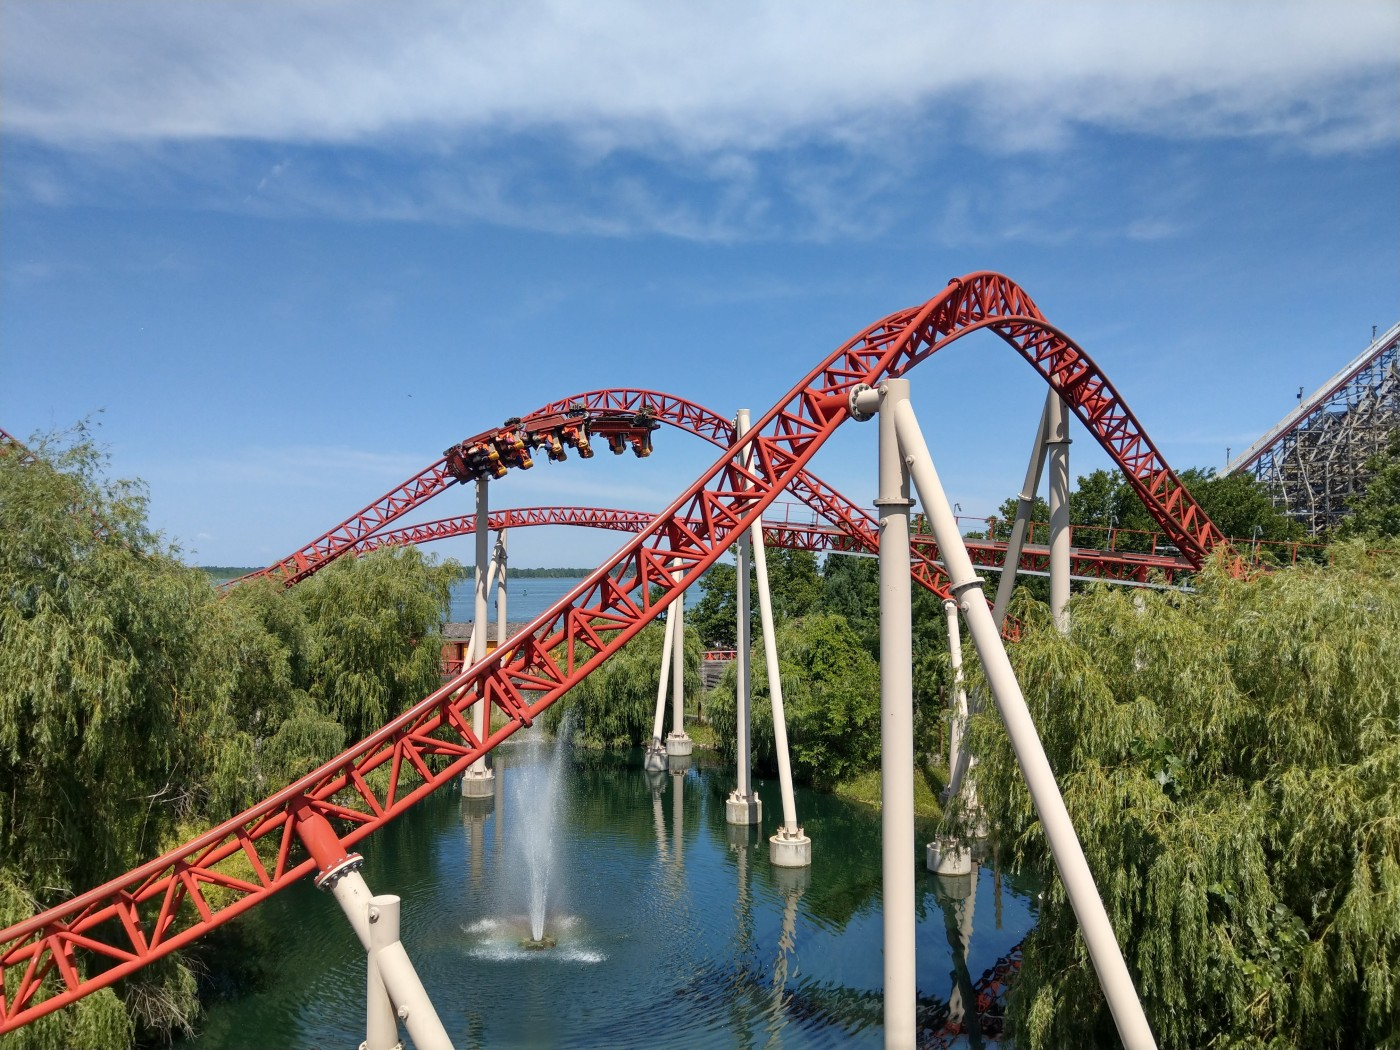 Maverick at Cedar Point travelling through one of its inversions